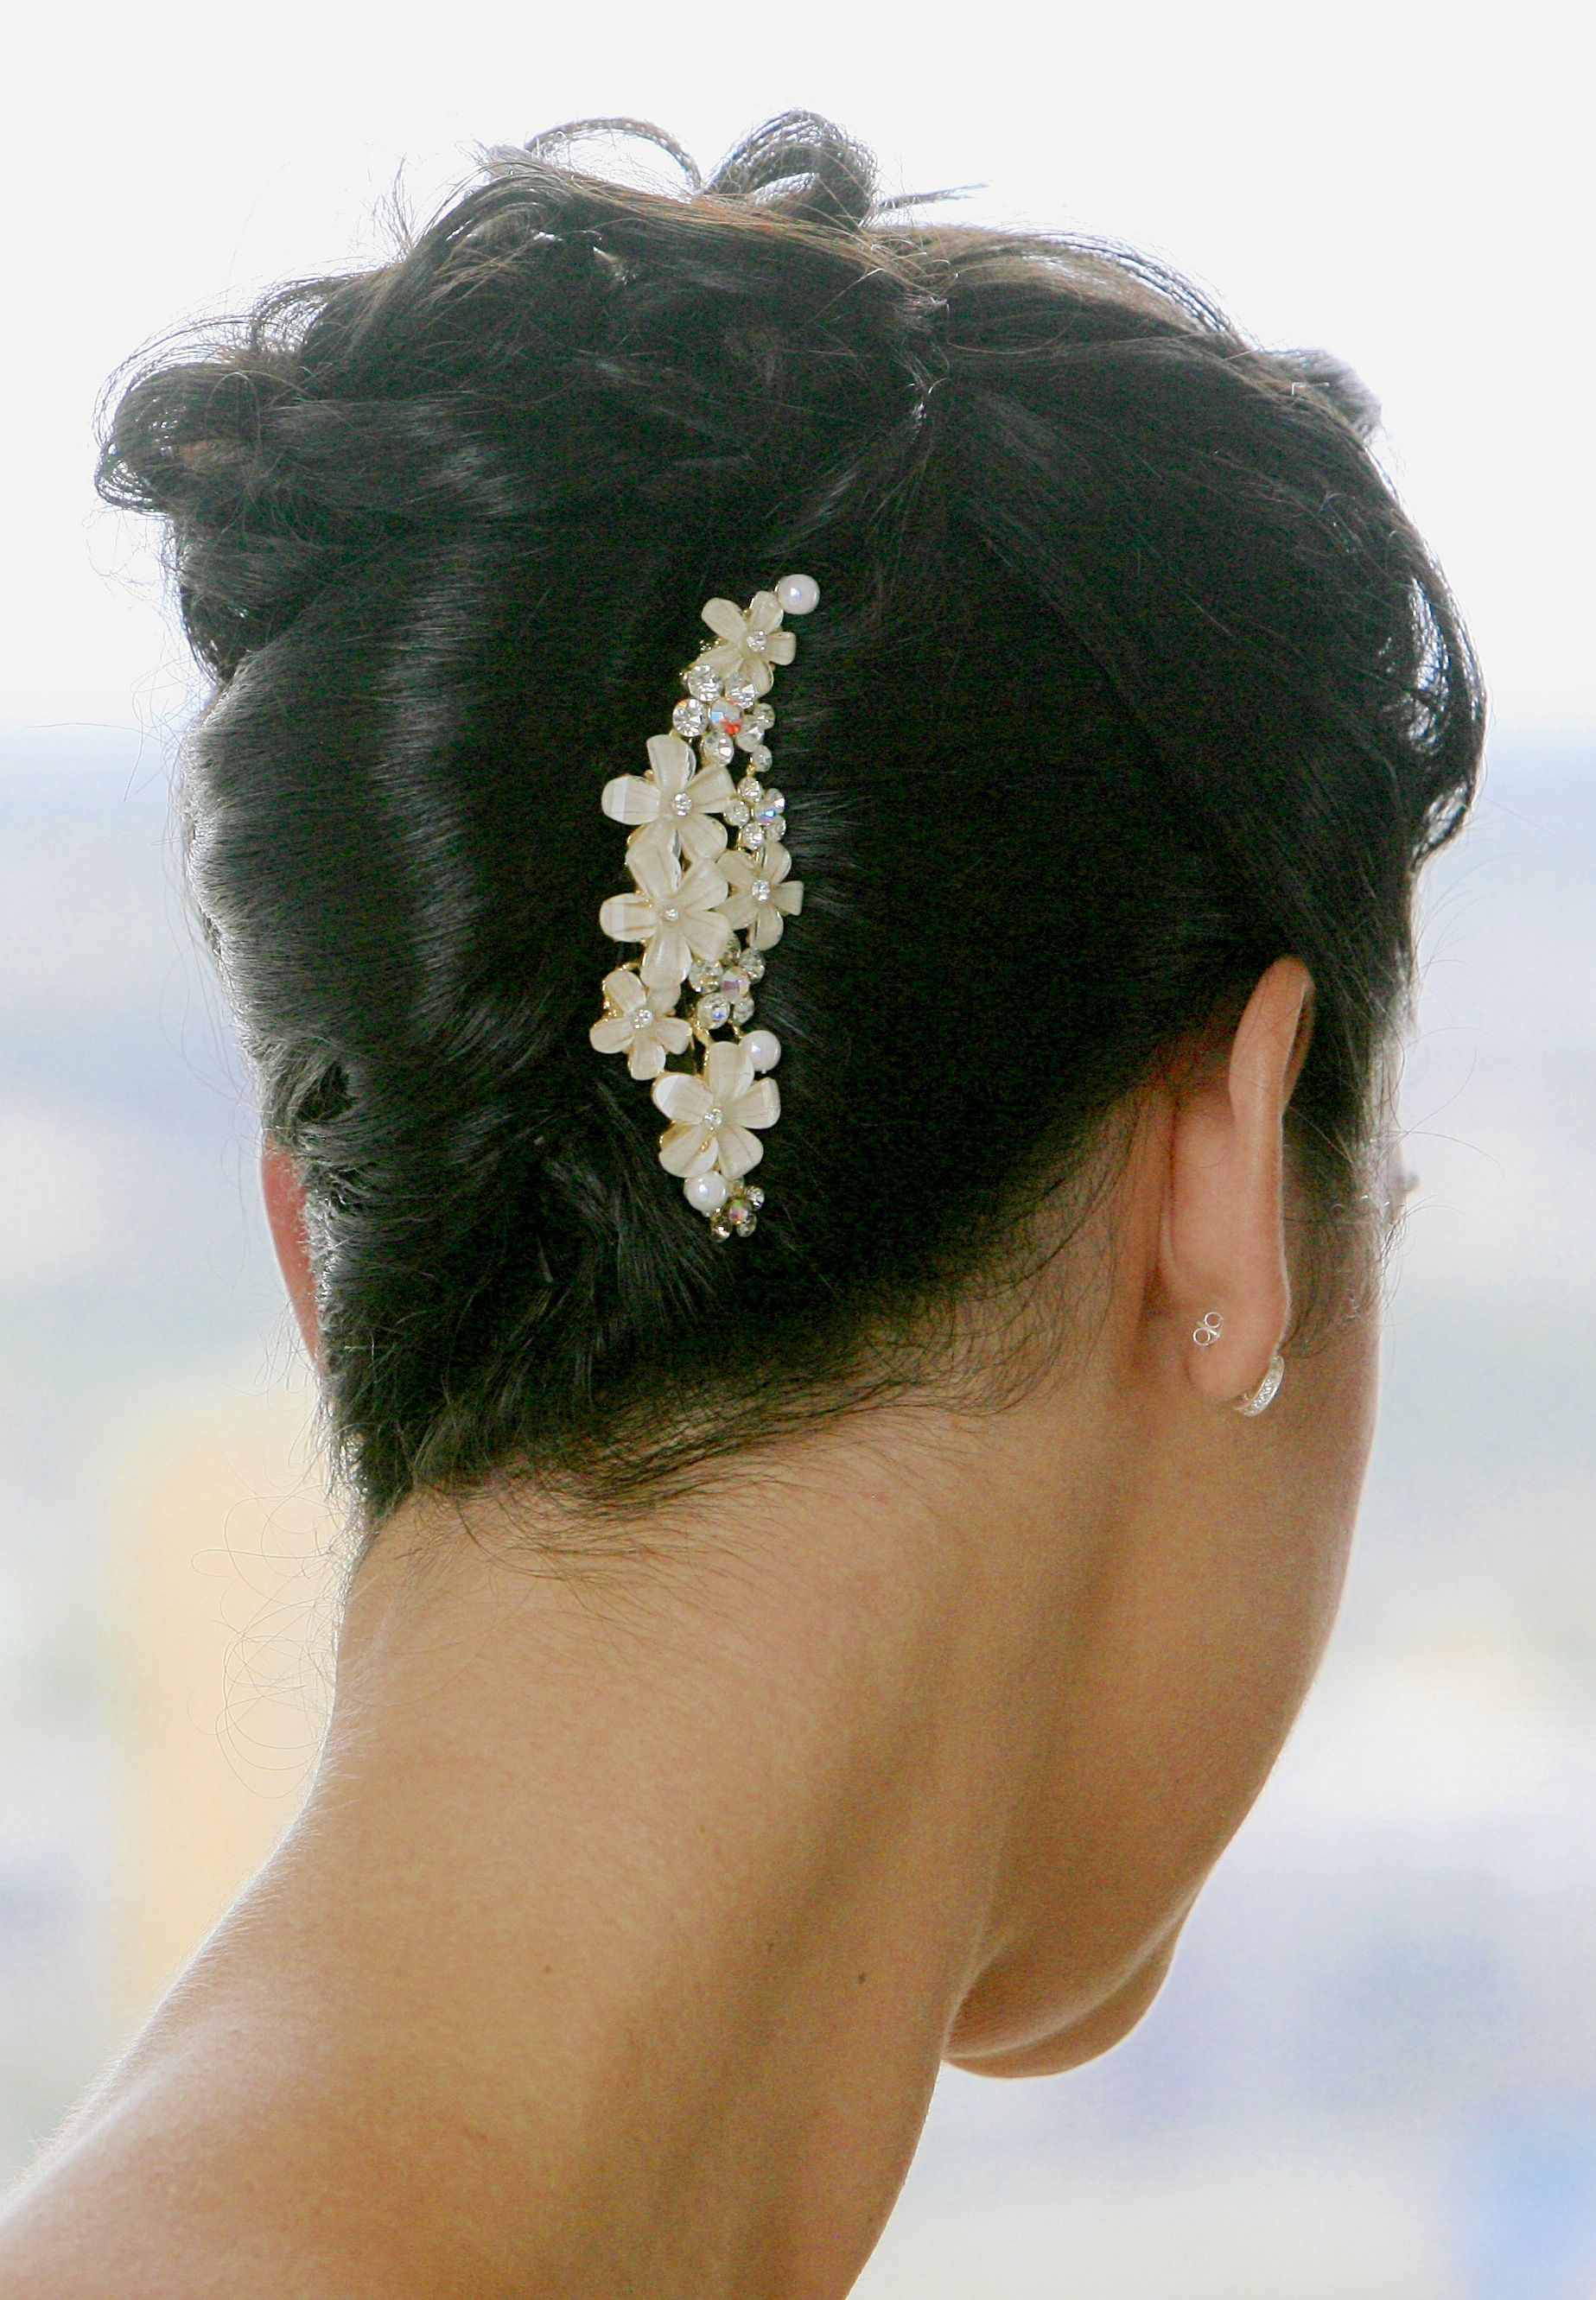 french twist with curls | Wedding hairstyles, Formal hairstyles, Hair styles